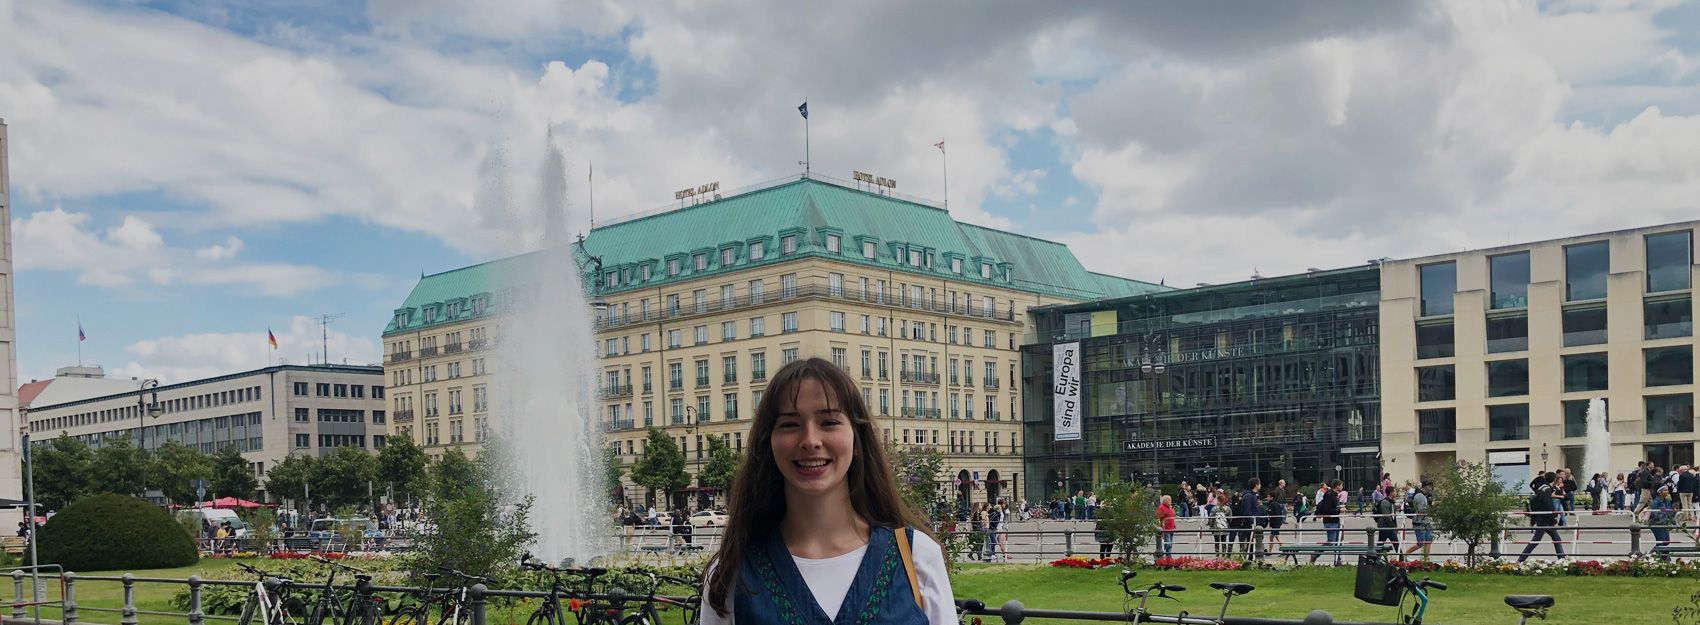 female intern abroad in berlin, smiling in front of a building